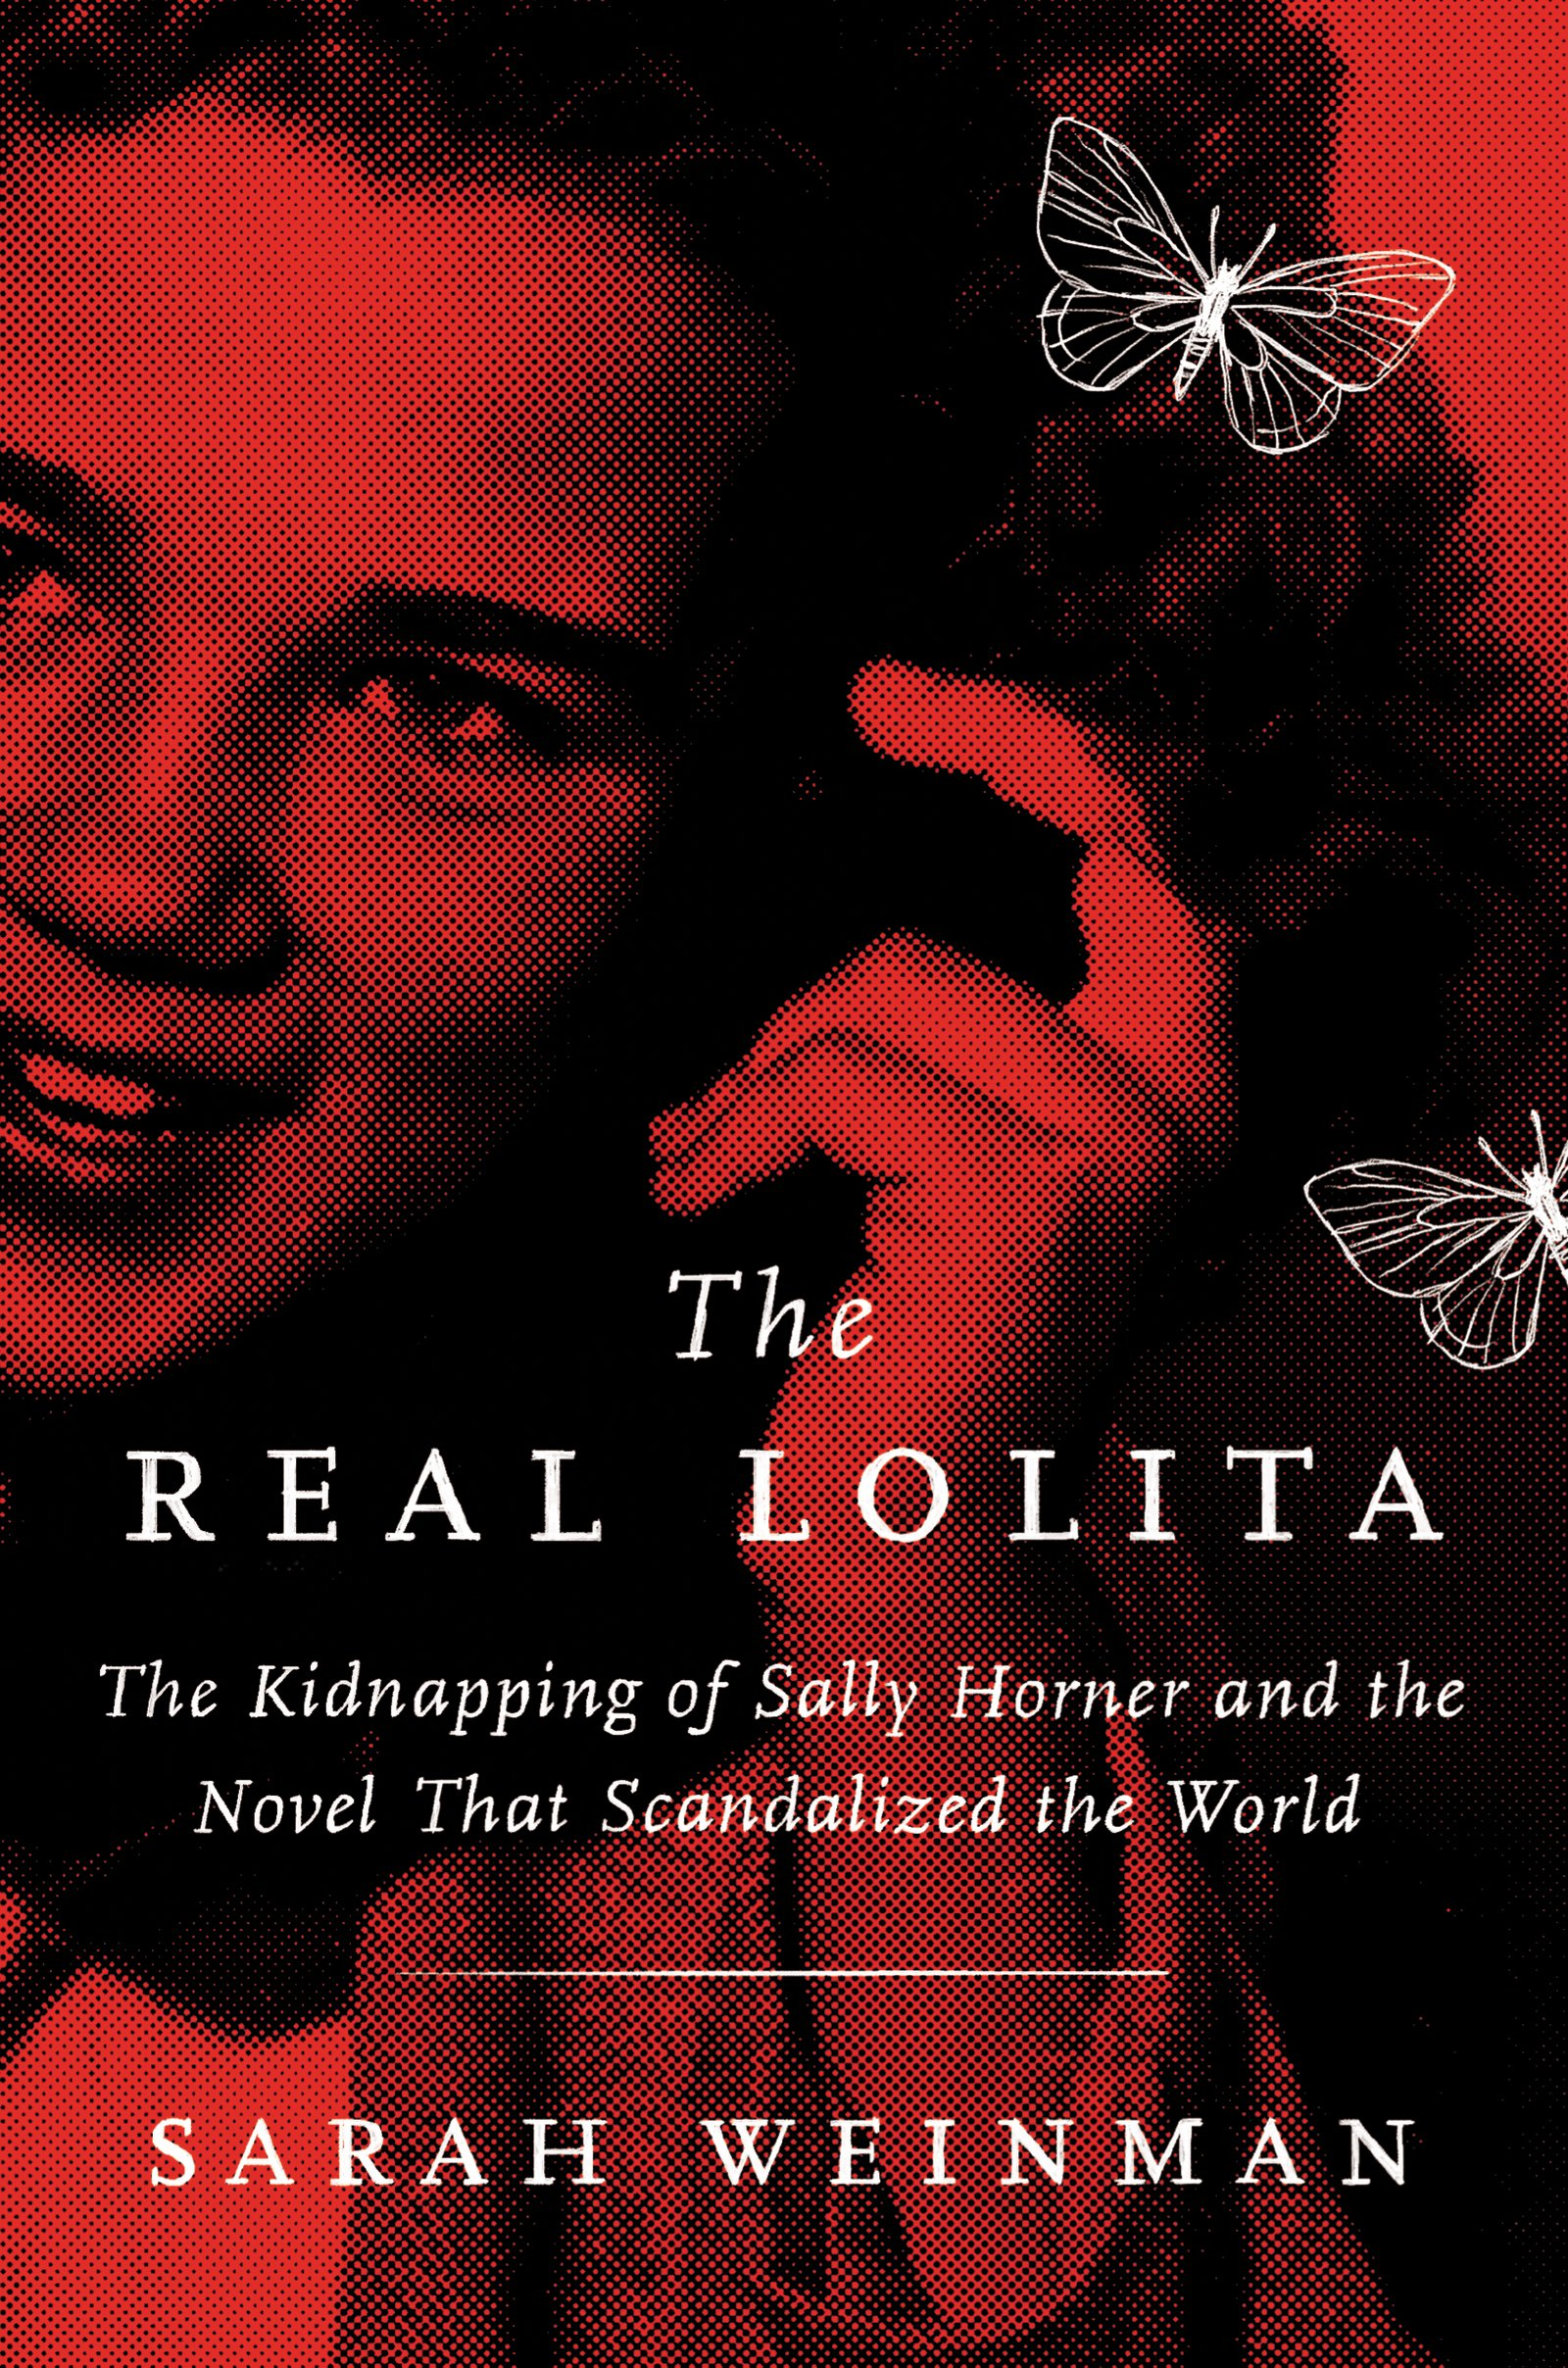 The Real Lolita: The Kidnapping of Sally Horner and the Novel That Scandalized the World Hardcover – September 11, 2018 Sarah Weinman Ecco 0062661922 Biographies